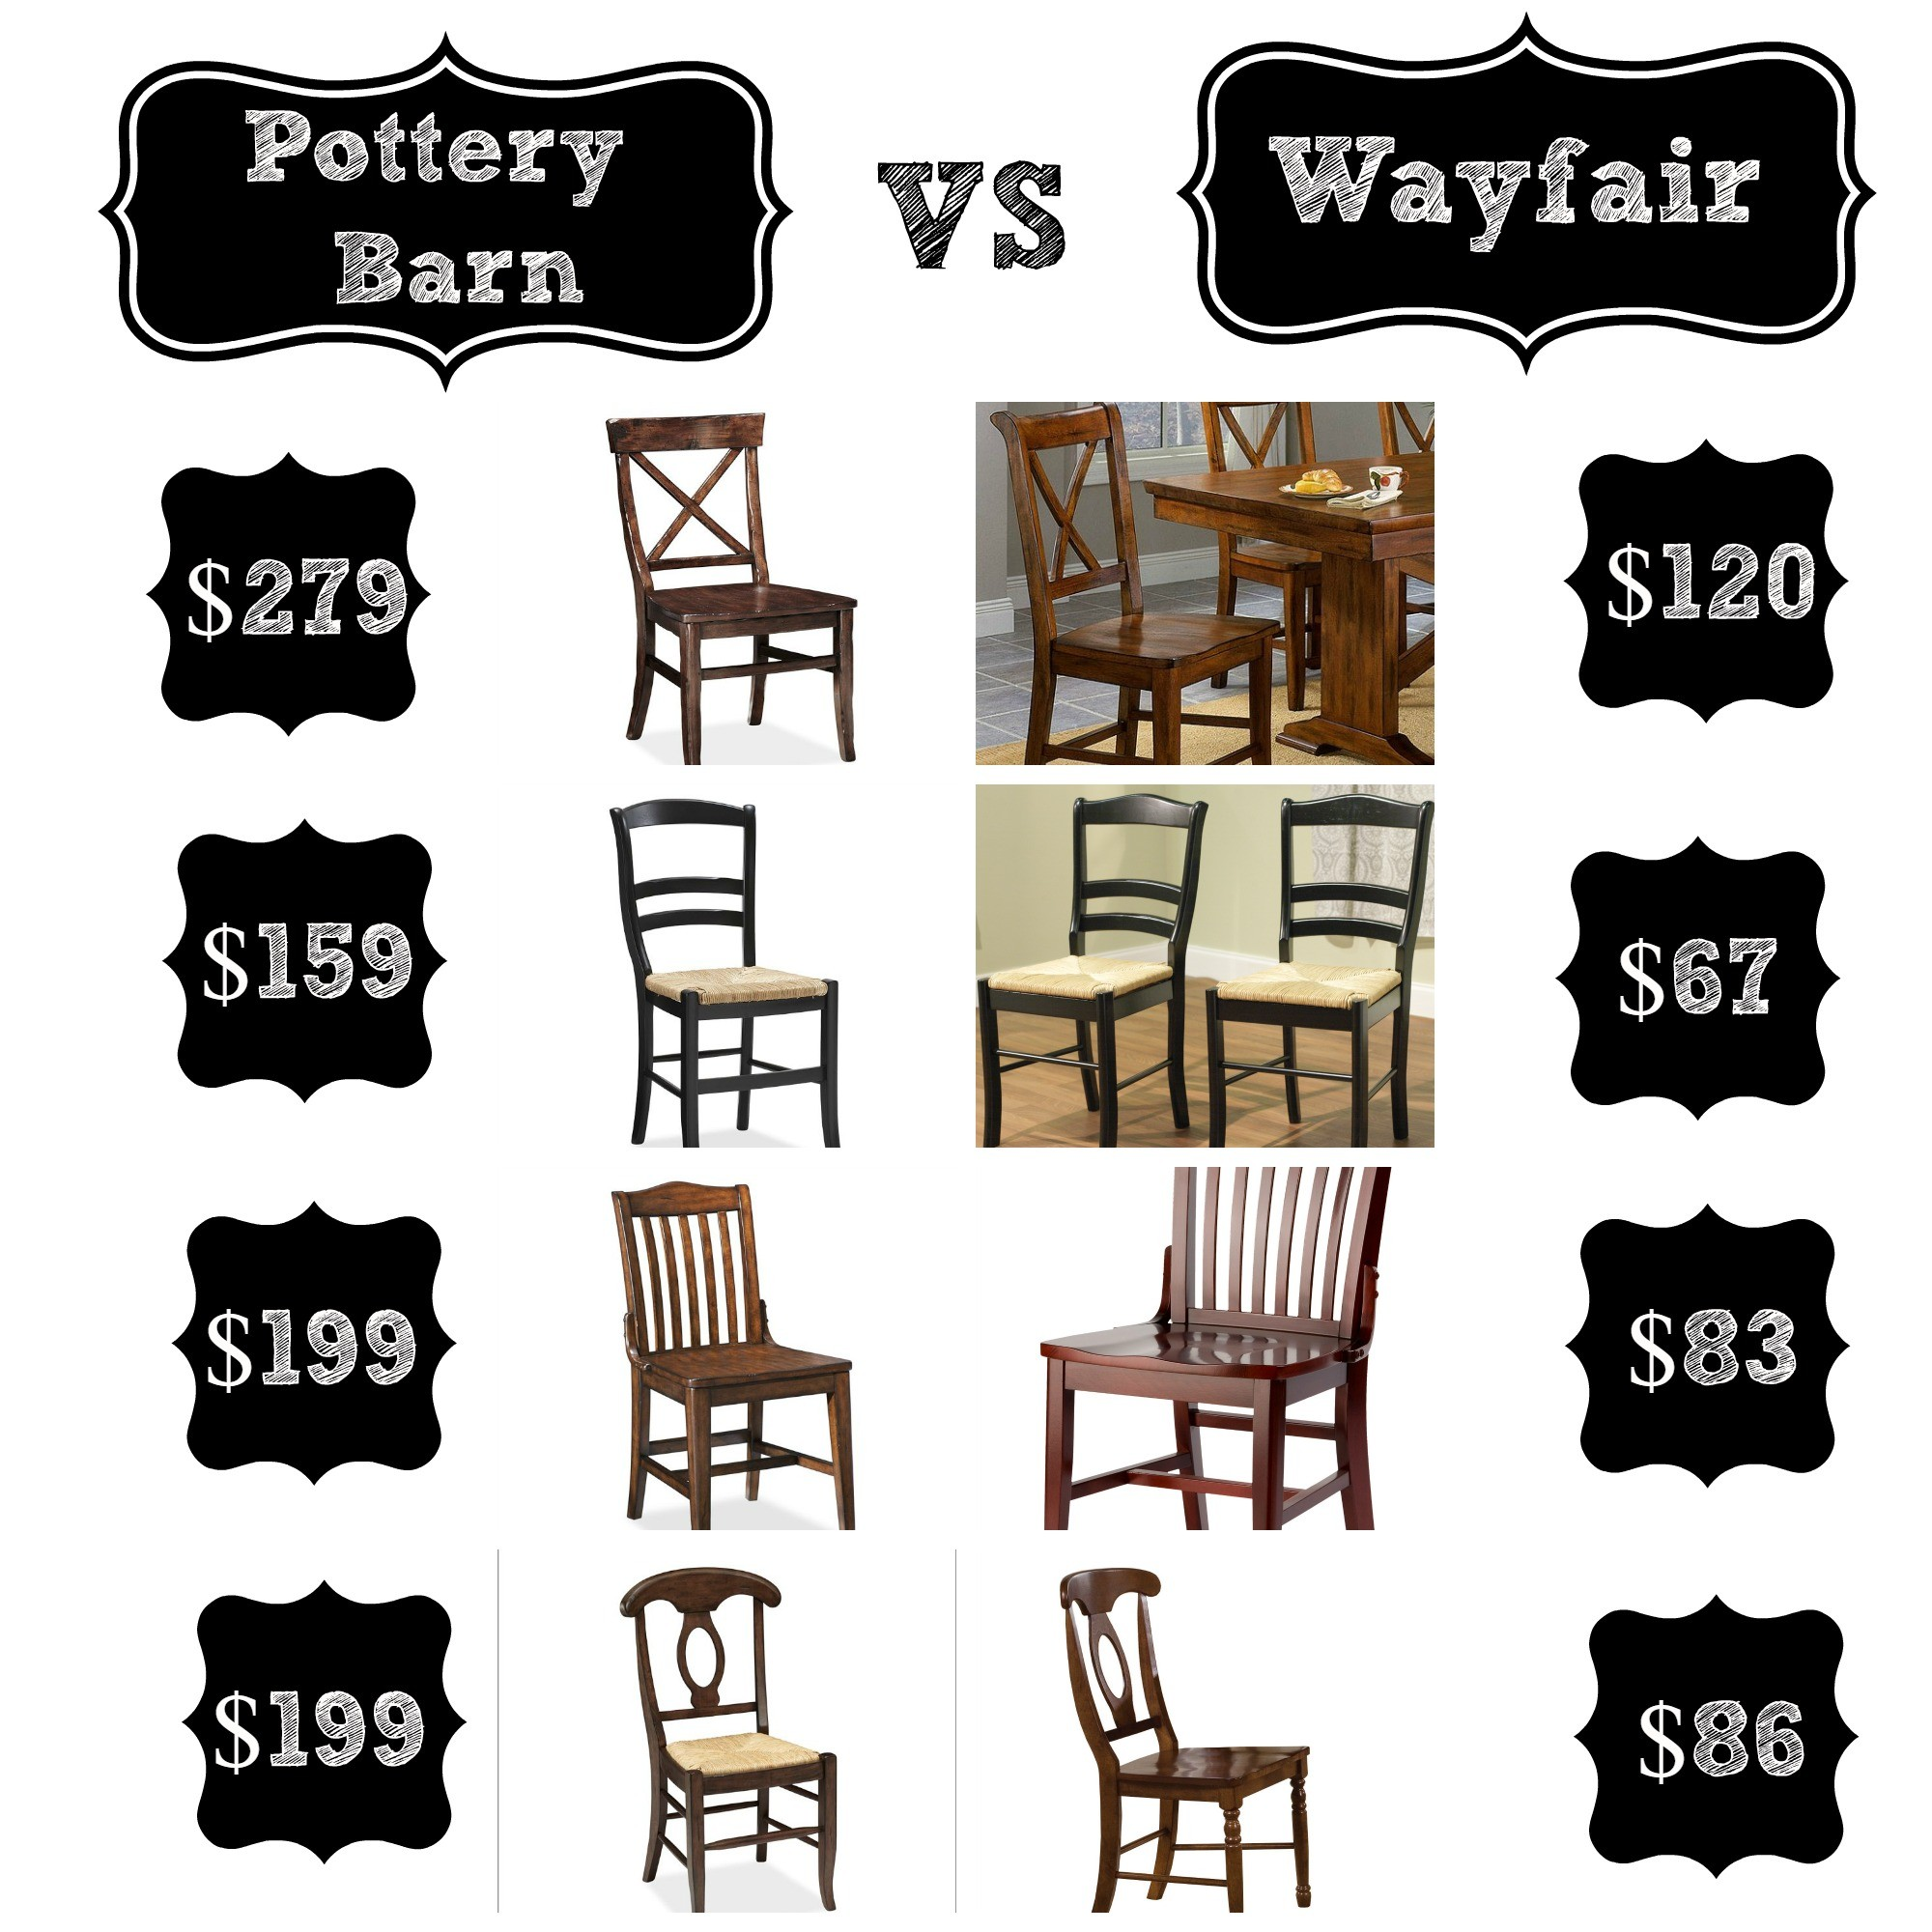 Decor Look Alikes | Pottery Barn vs Wayfair : Dining Chairs